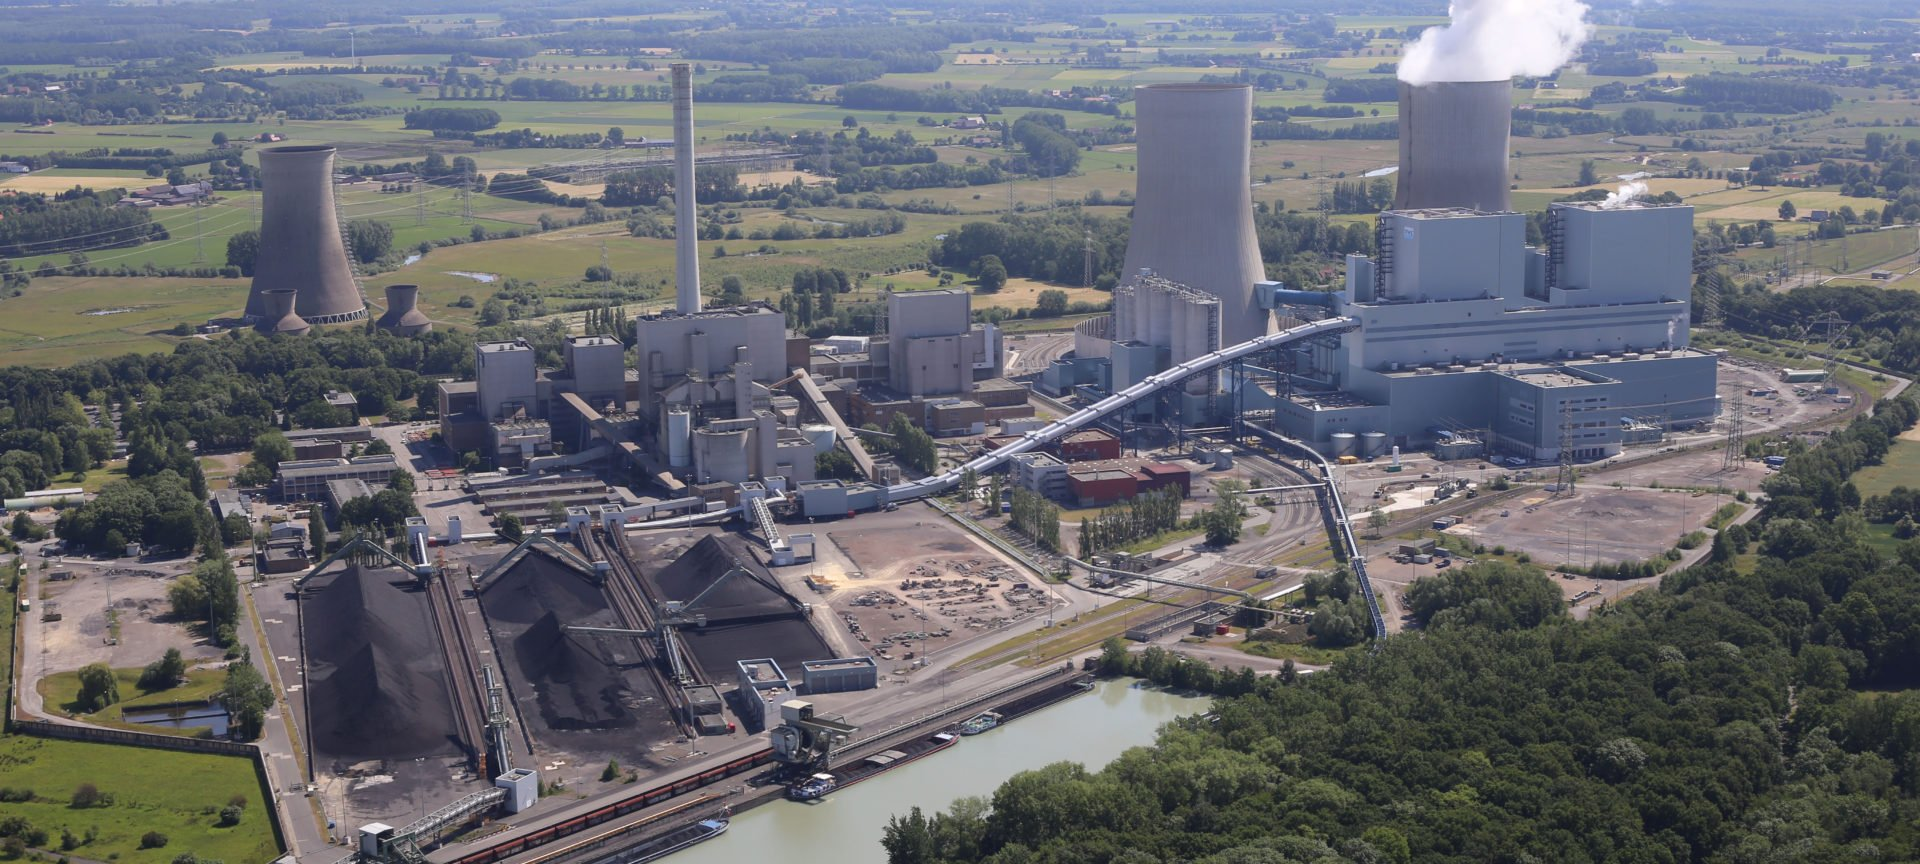 AUMUND Group Industrie Kraftwerke - Industry Power